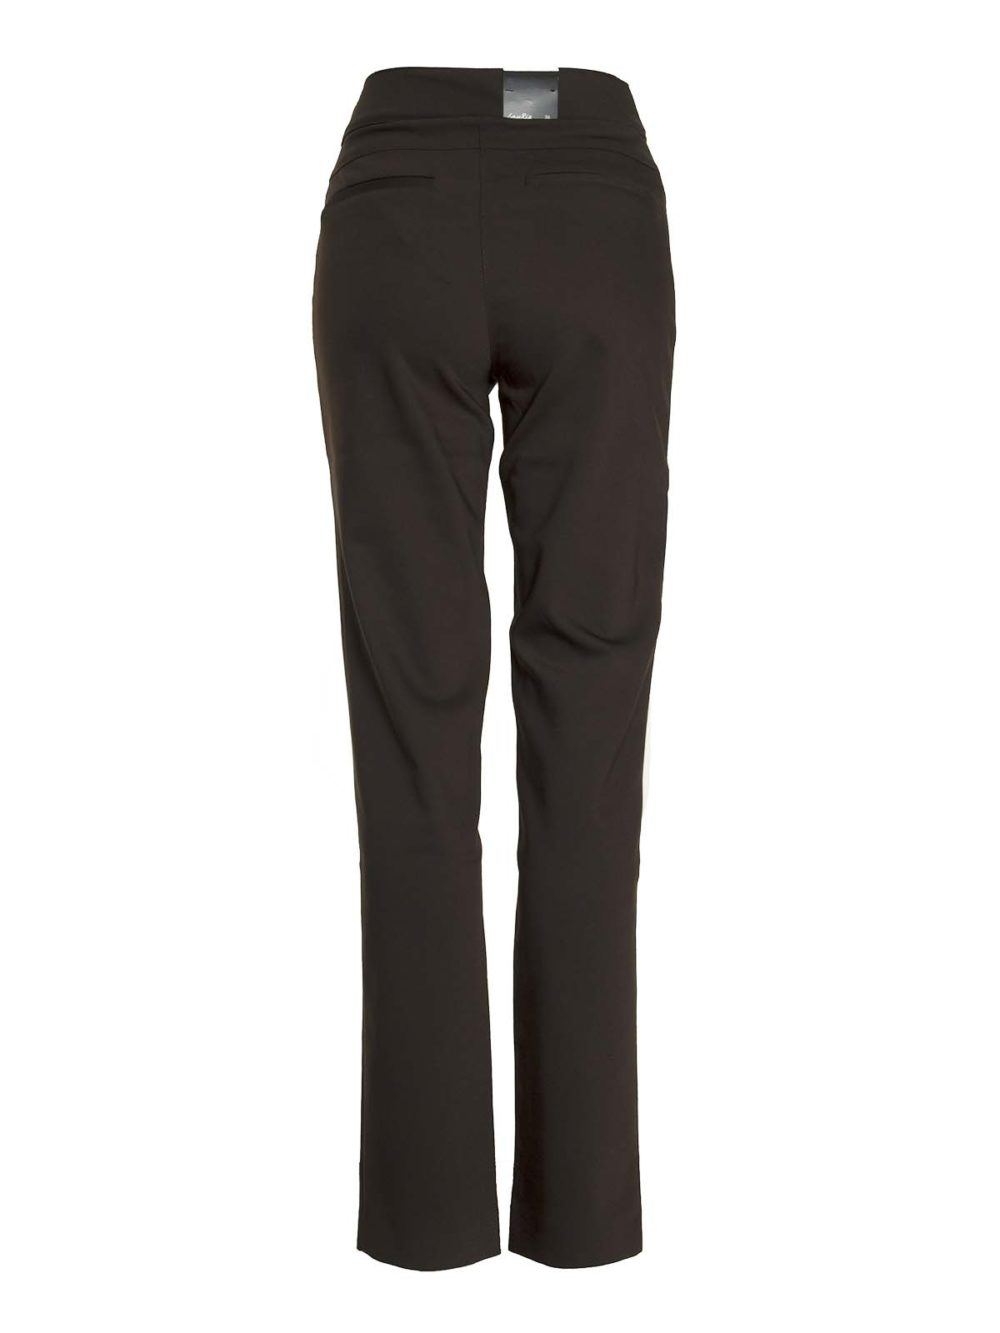 Brenda Regular Trousers Laurie Katie Kerr Women's Clothing